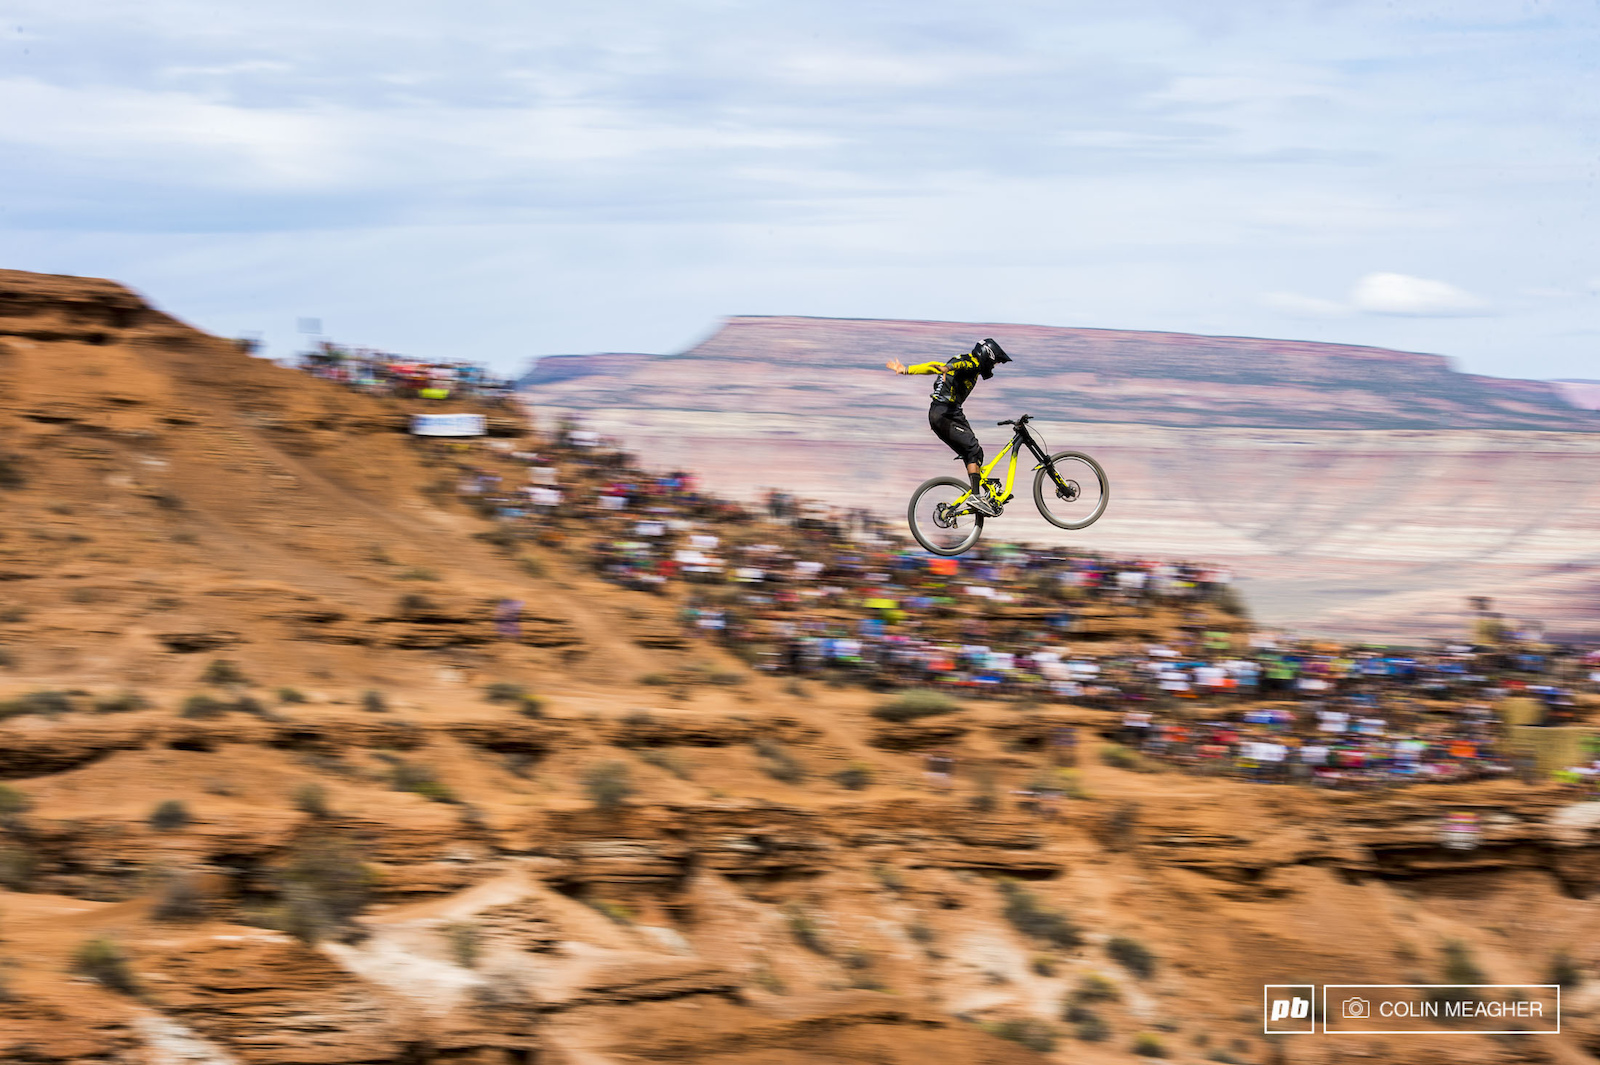 Another DH racer with Rampage chops Remi Metailler throwing the suicide no-hander across the canyon gap.